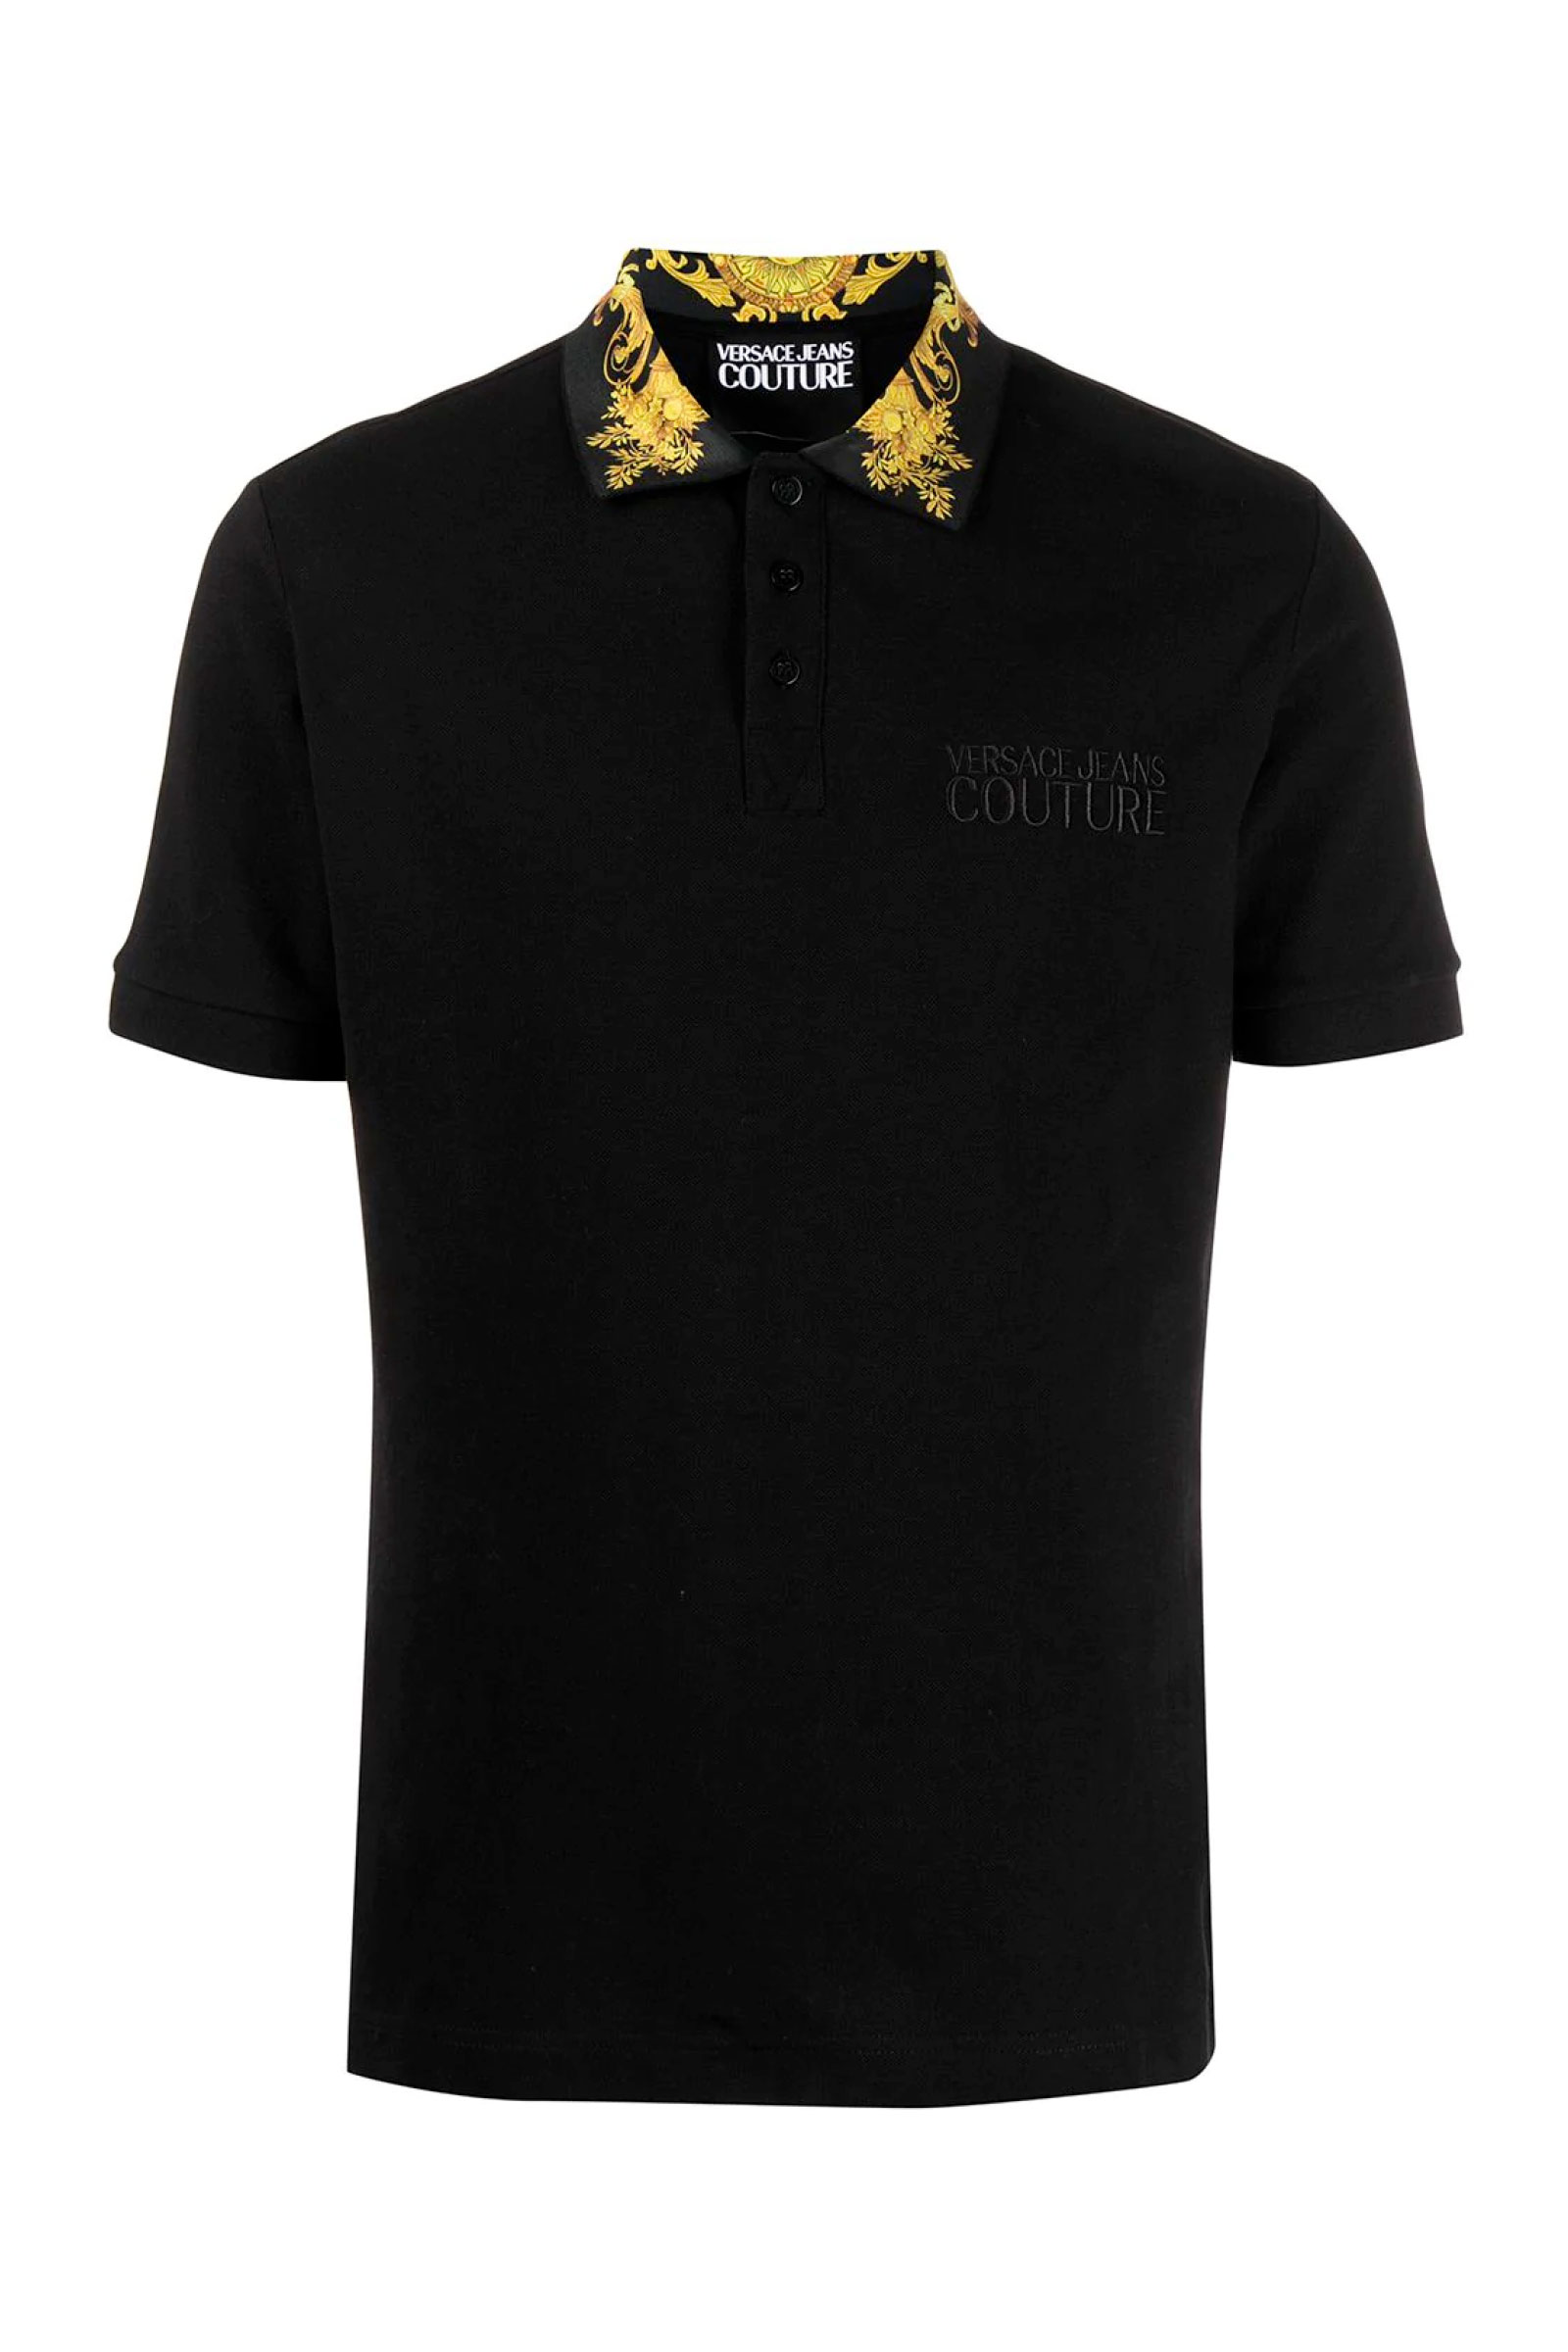 VERSACE JEANS COUTURE Polo Uomo VERSACE JEANS COUTURE | T-Shirt | B3GWA7T236571K42